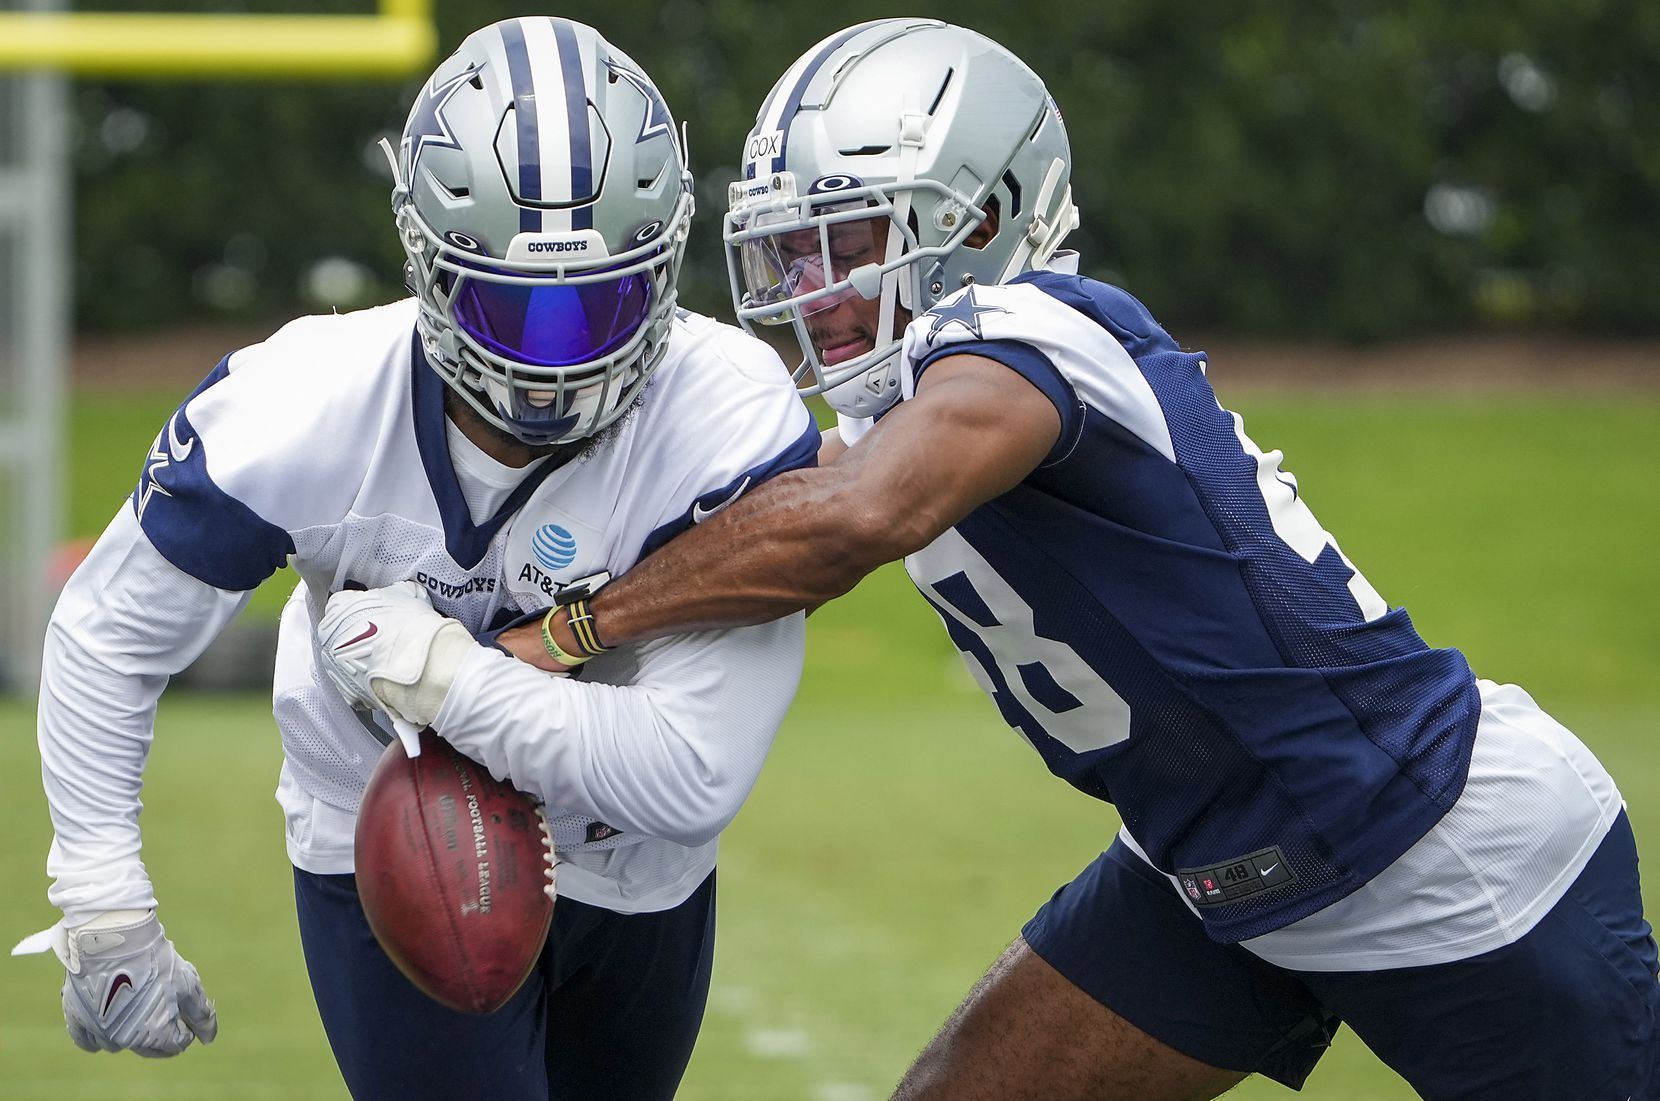 Dallas Cowboys linebacker Jabril Cox (48) knocks the ball away from running back Ezekiel Elliott (21) in drill during a minicamp practice at The Star on Wednesday, June 9, 2021, in Frisco. (Smiley N. Pool/The Dallas Morning News)